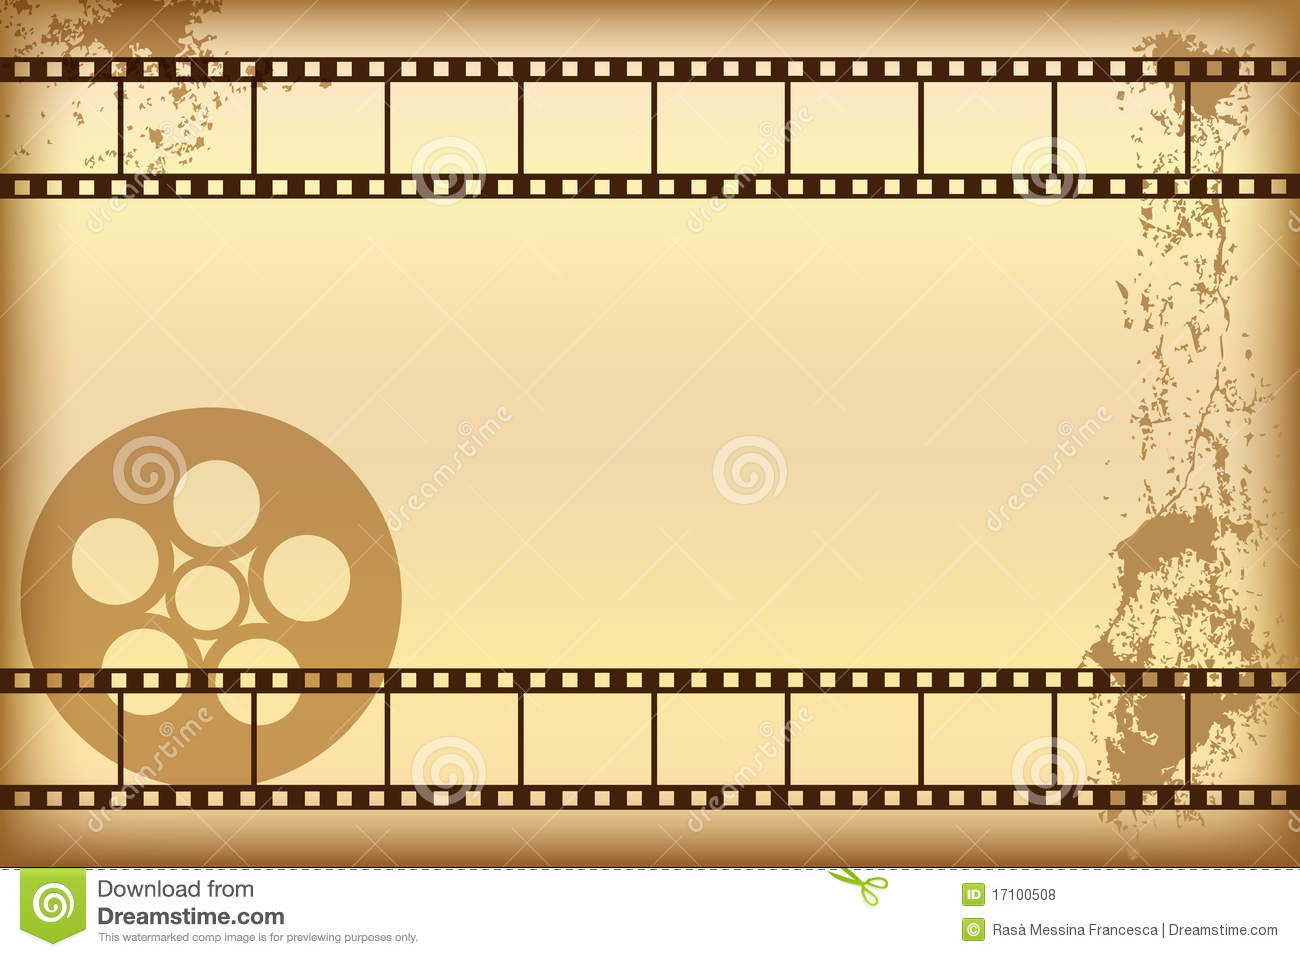 hight resolution of grunge movie stock illustrations 5 170 grunge movie stock illustrations vectors clipart dreamstime